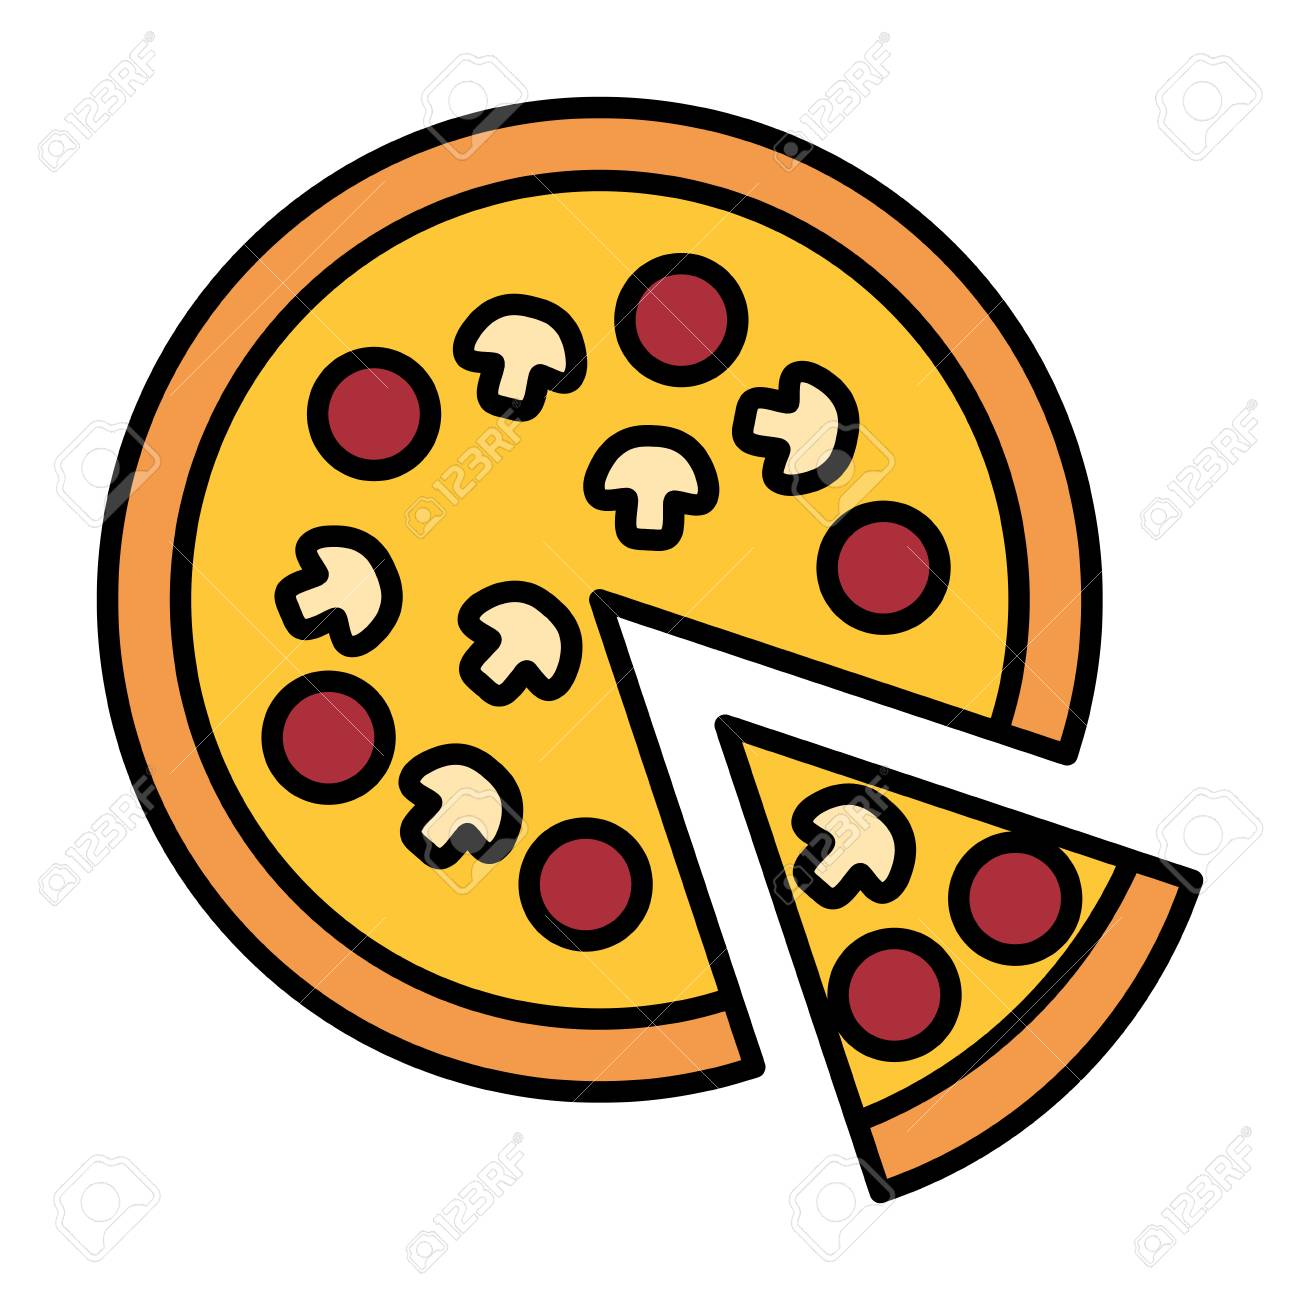 Pizza Icon Over White Background, Colorful Design. Vector Illustration  Royalty Free Cliparts, Vectors, And Stock Illustration. Image 126397758.